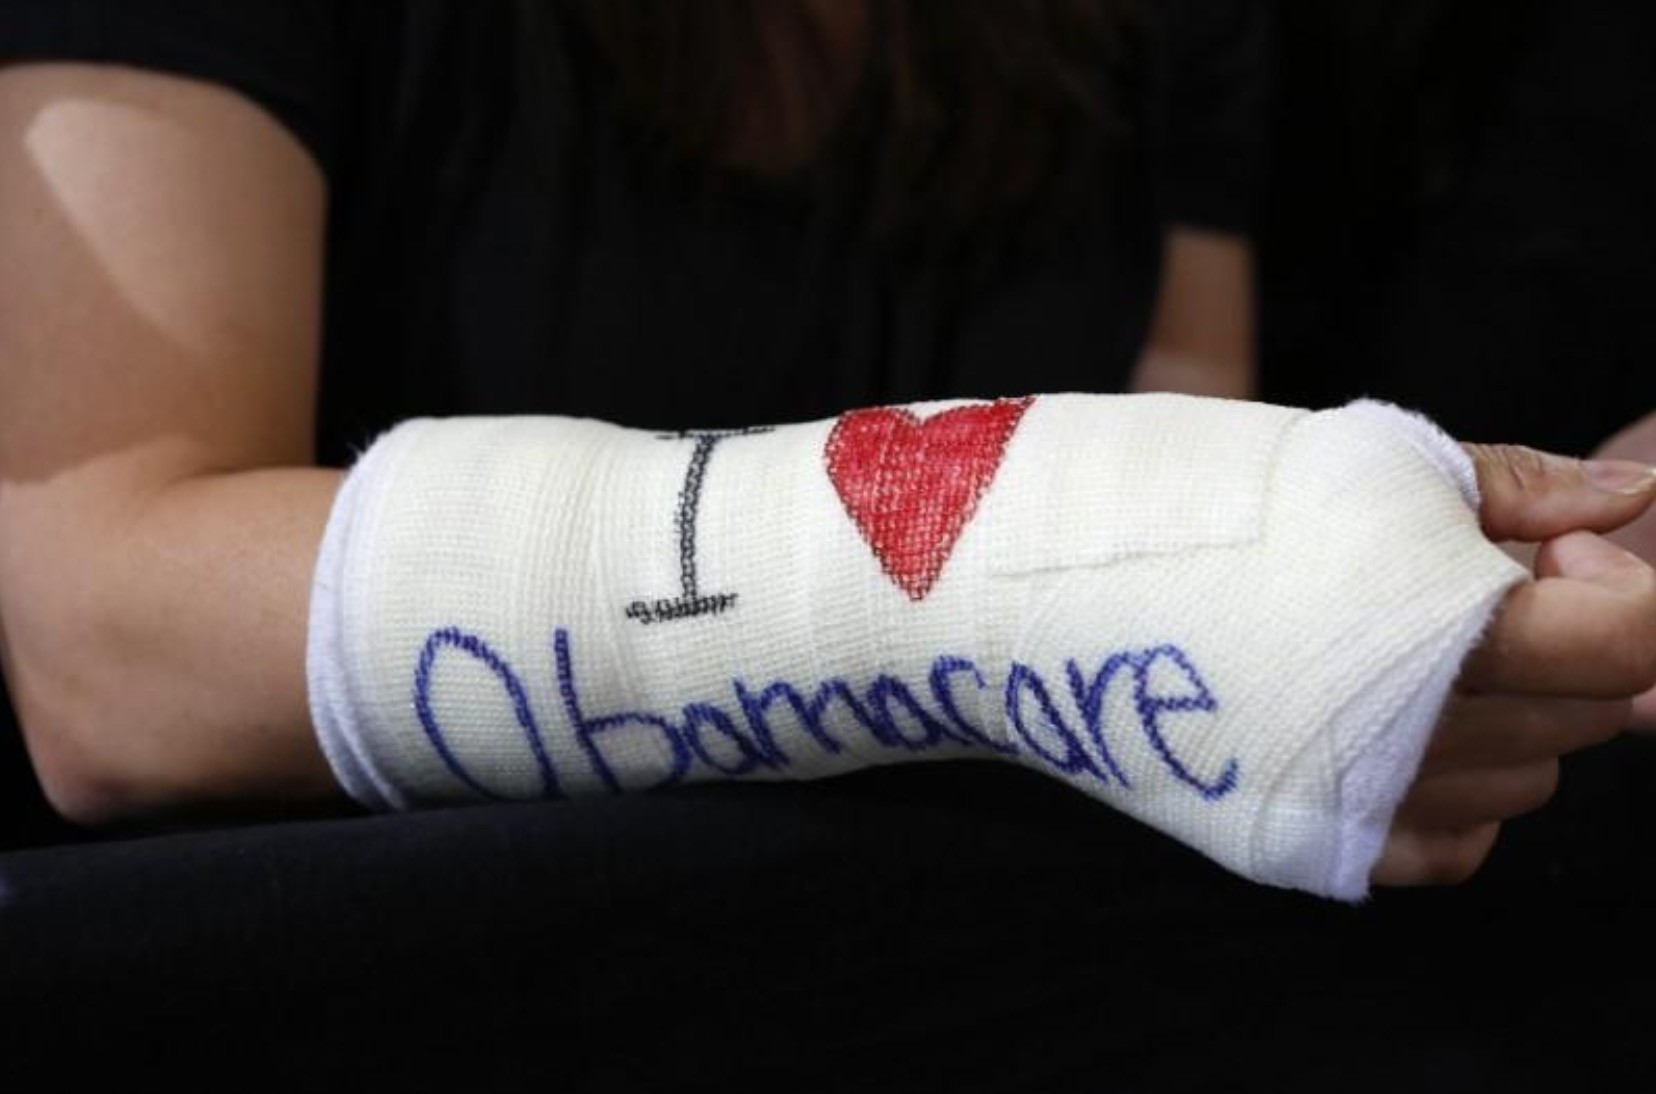 Cathey Park of Cambridge, Massachusetts wears a cast for her broken wrist with ,I Love Obamacare, written upon it prior to Obama's arrival to speak about health insurance at Faneuil Hall in Boston October 30, 2013. (Reuters Photo)